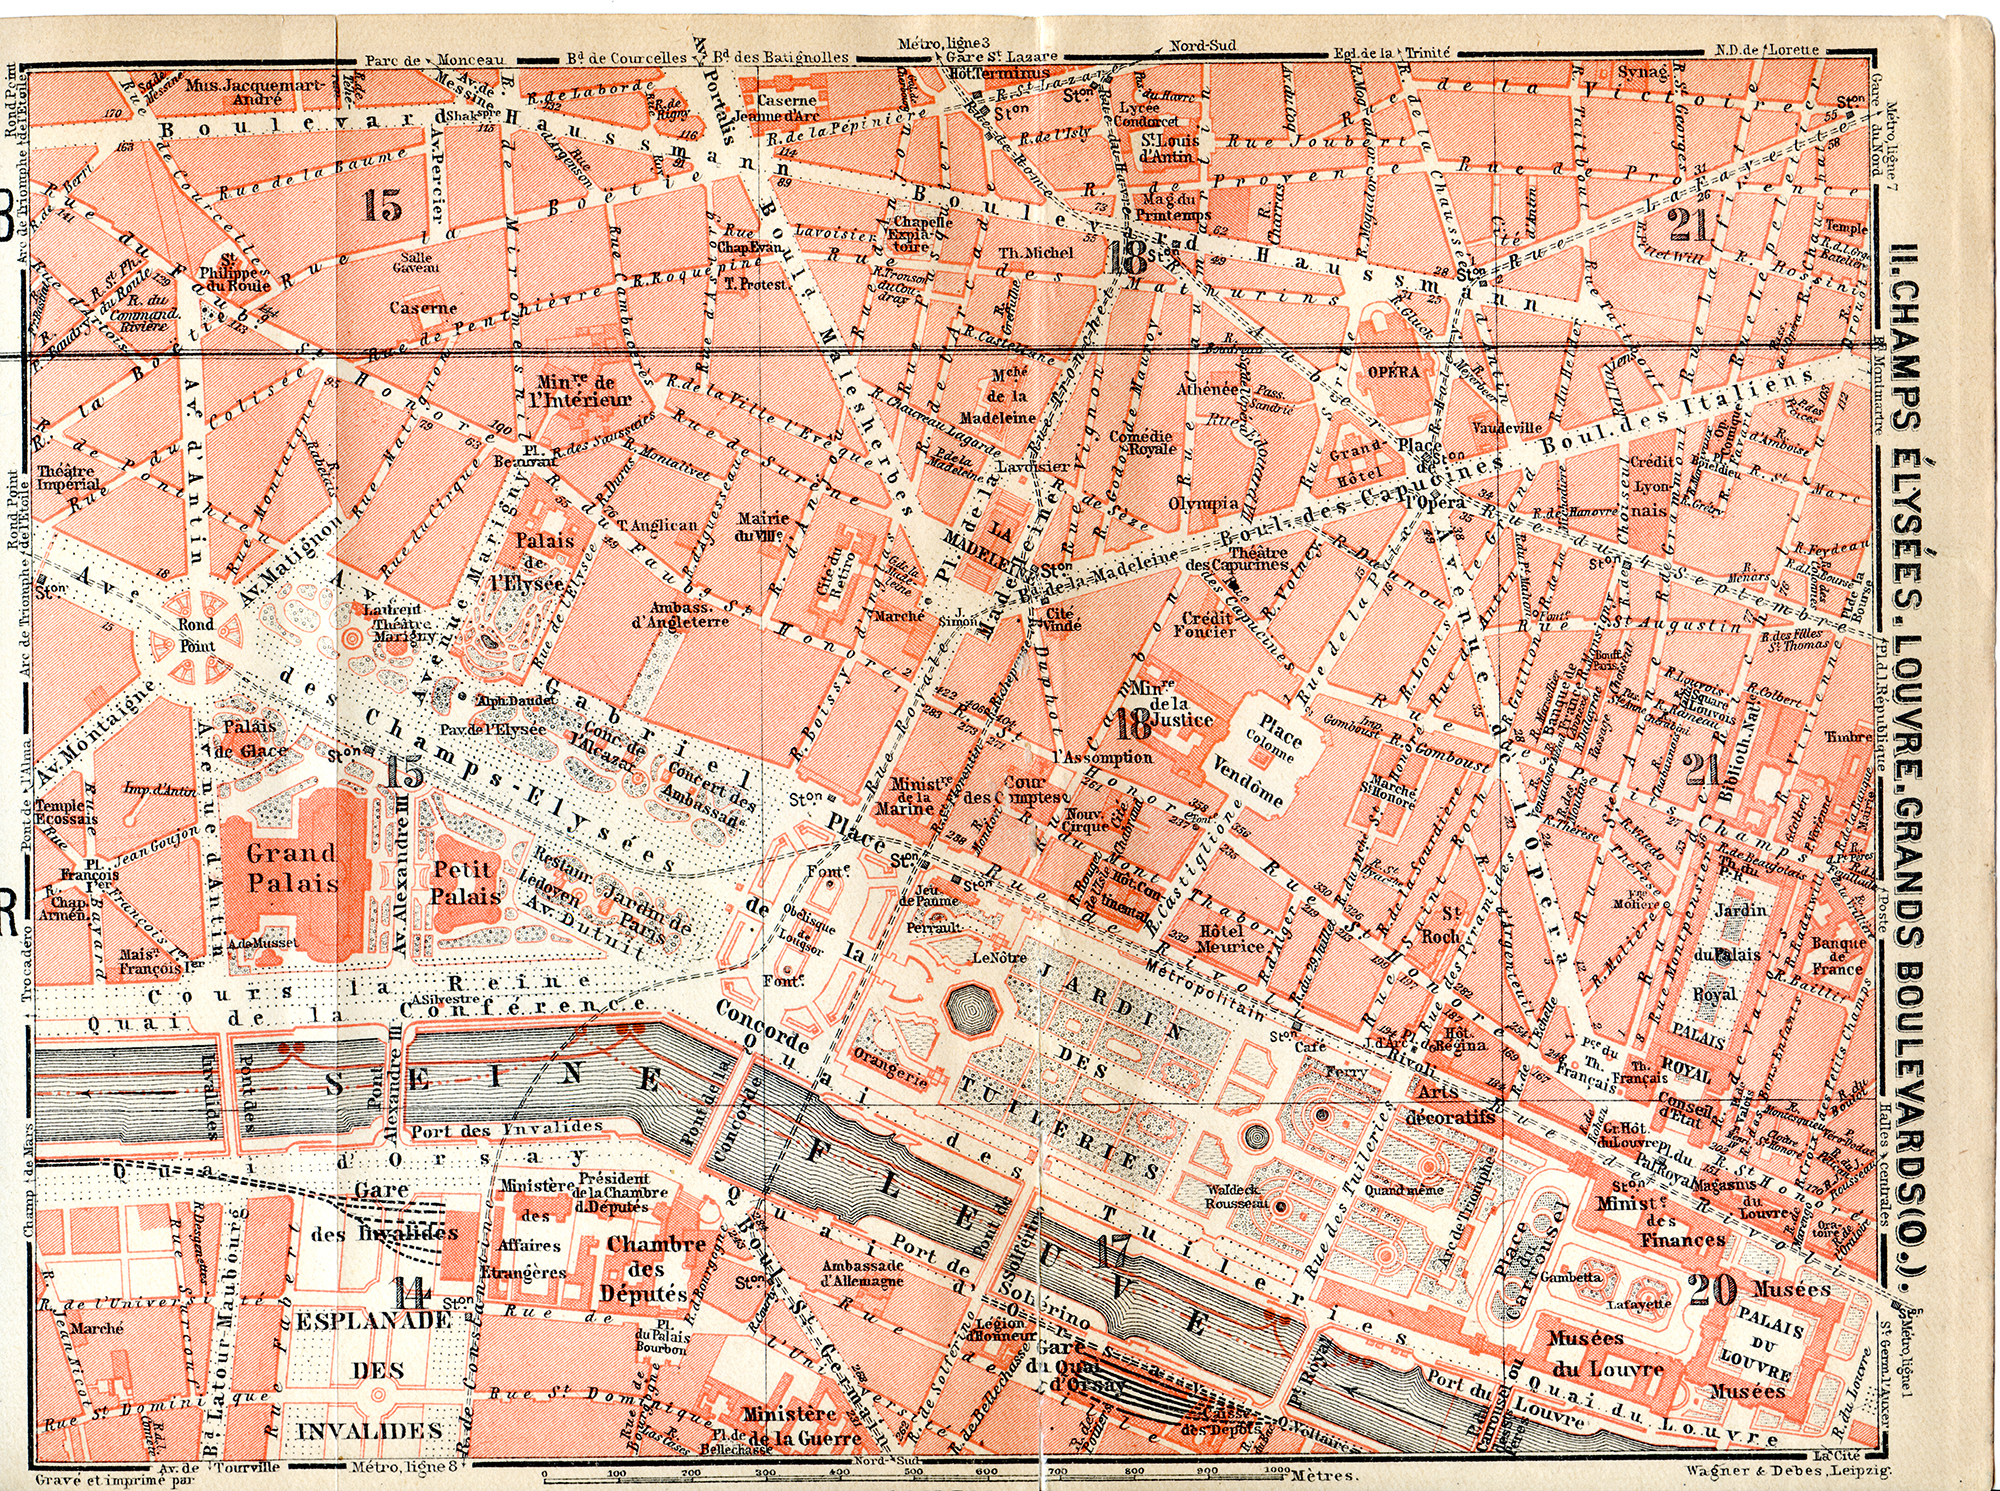 paris france grand palais map in public domain free royalty free royalty